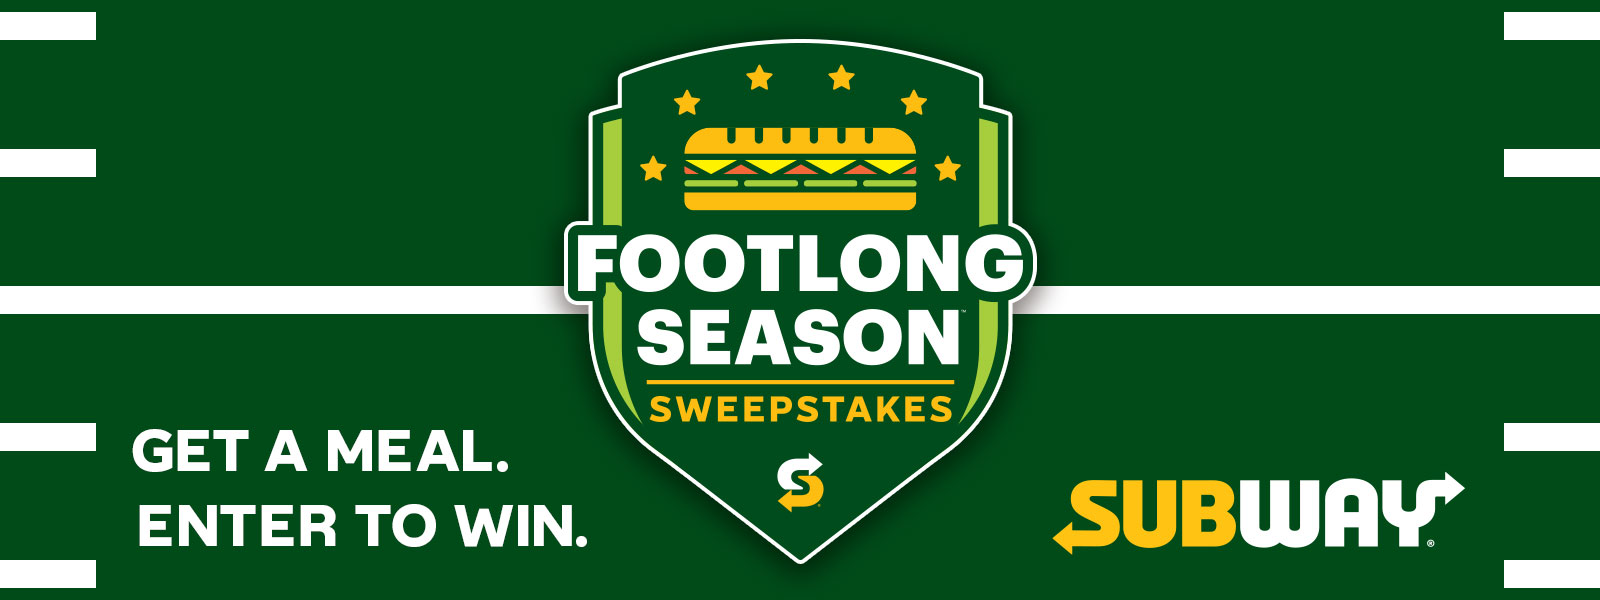 Subway Footlong Season Sweepstakes